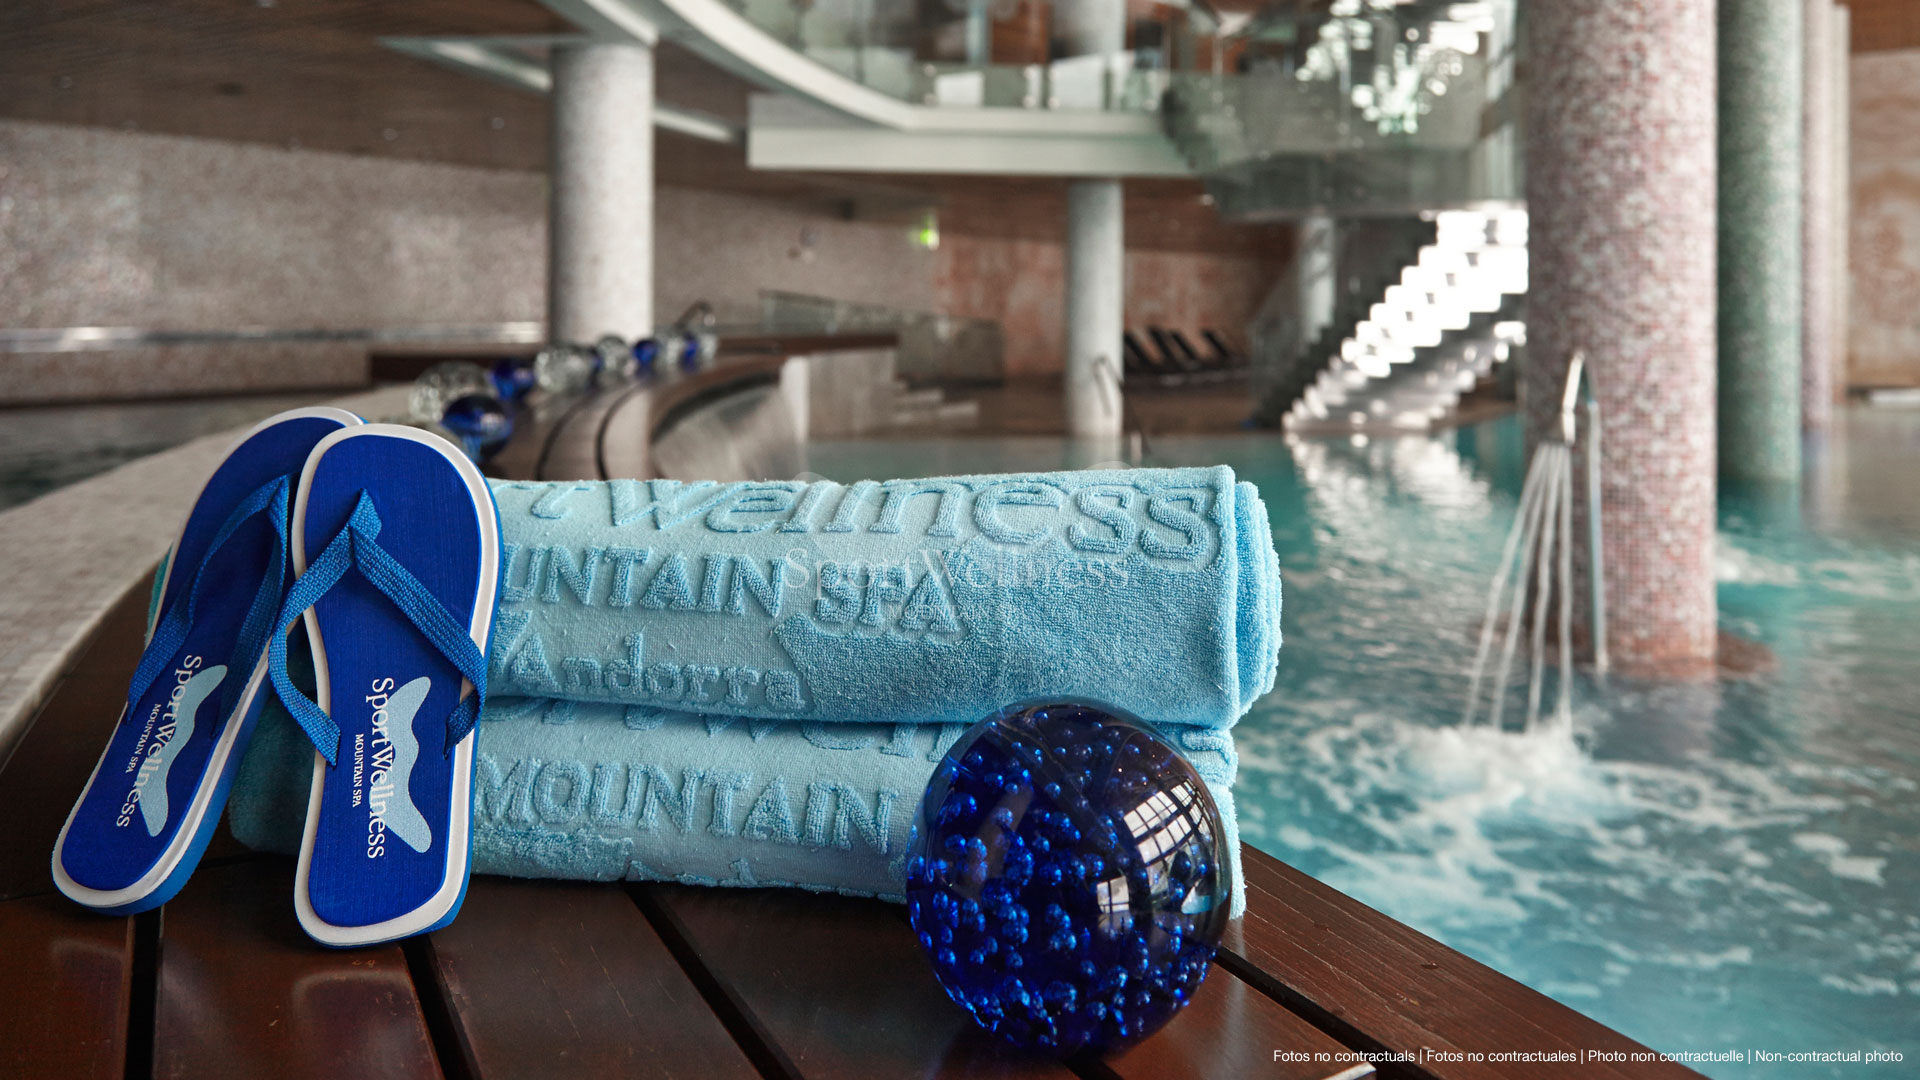 Circuito Wellness : Sport wellness mountain spa